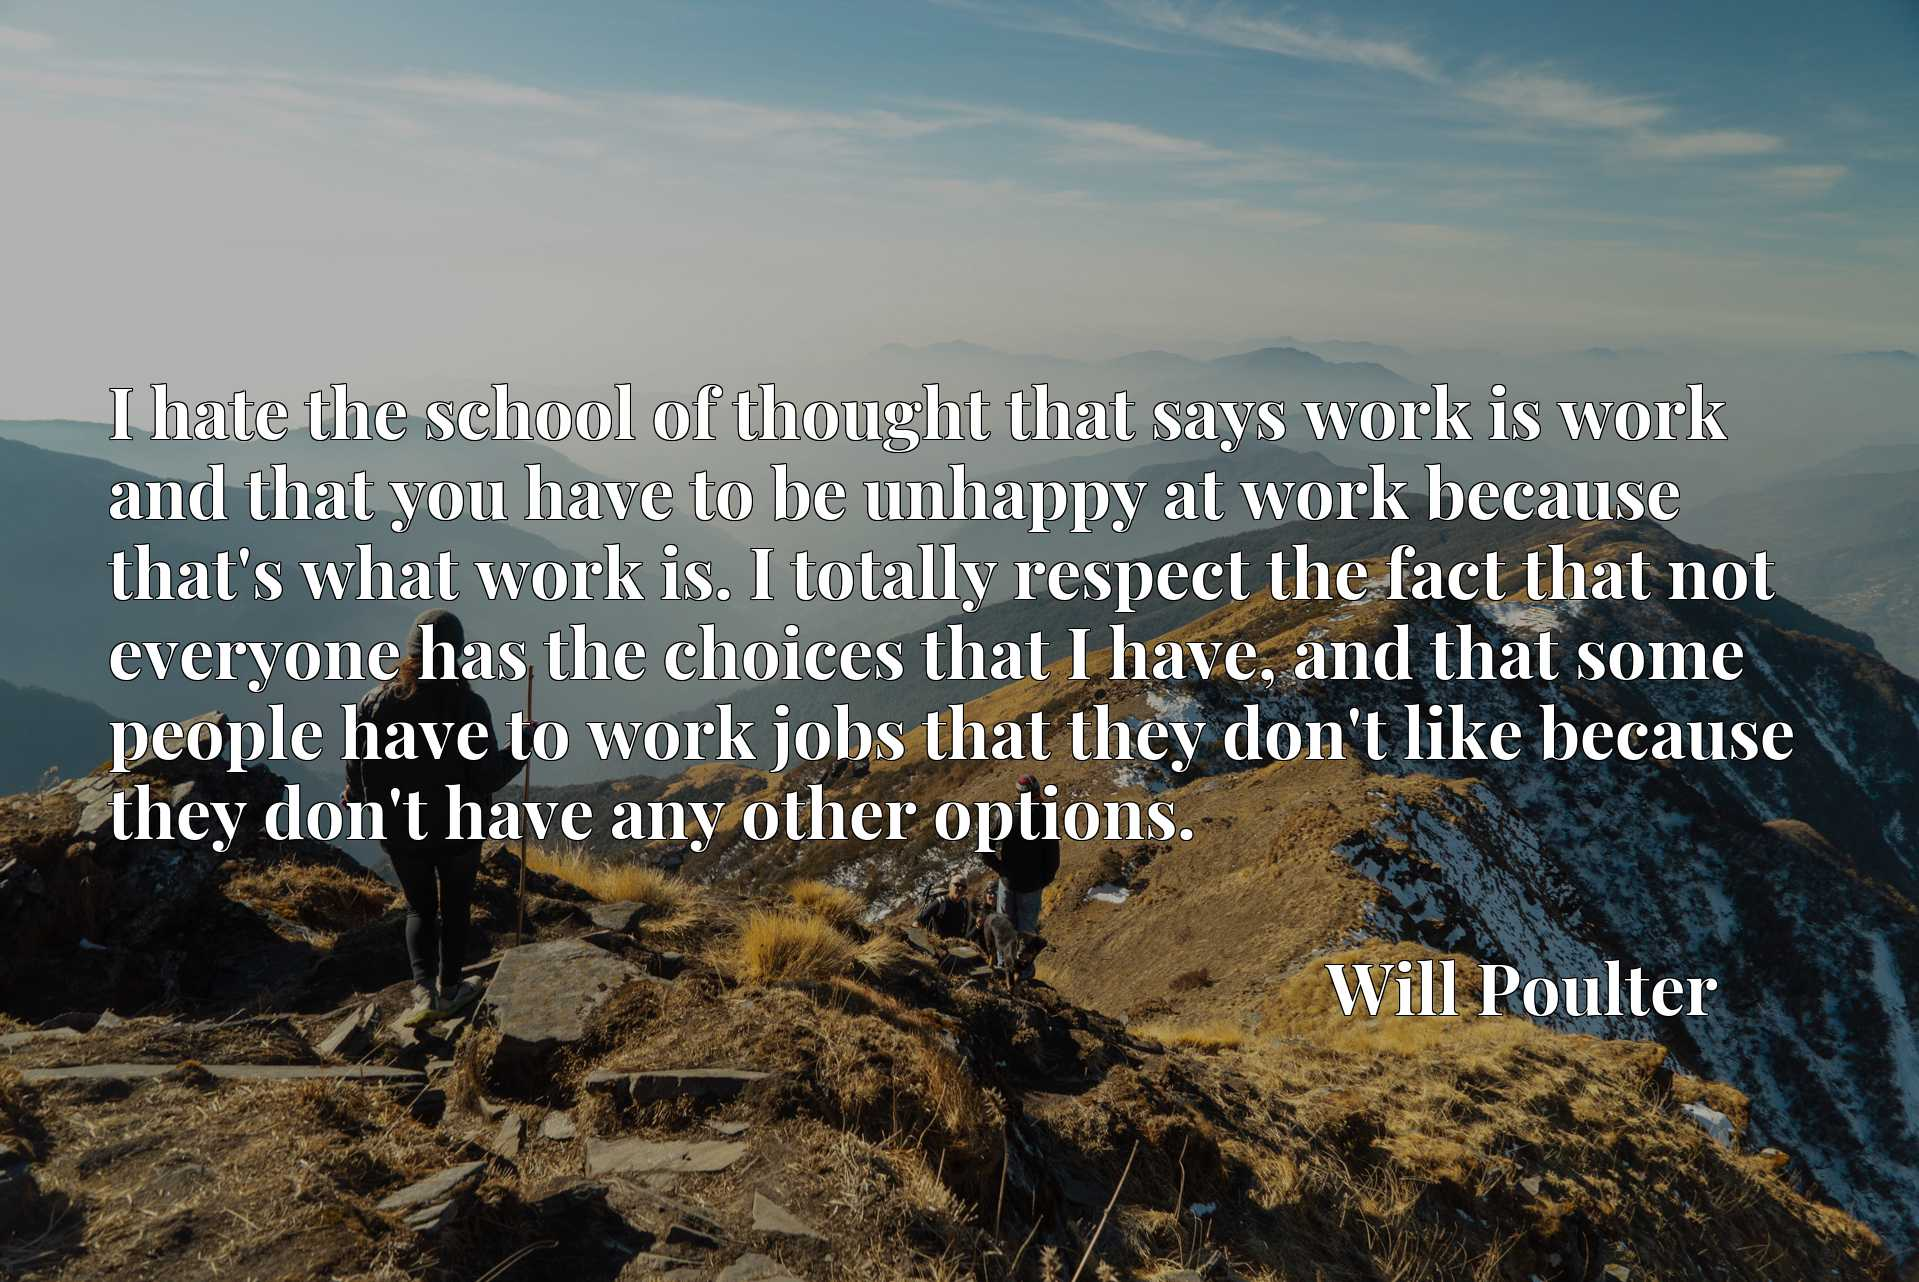 I hate the school of thought that says work is work and that you have to be unhappy at work because that's what work is. I totally respect the fact that not everyone has the choices that I have, and that some people have to work jobs that they don't like because they don't have any other options.